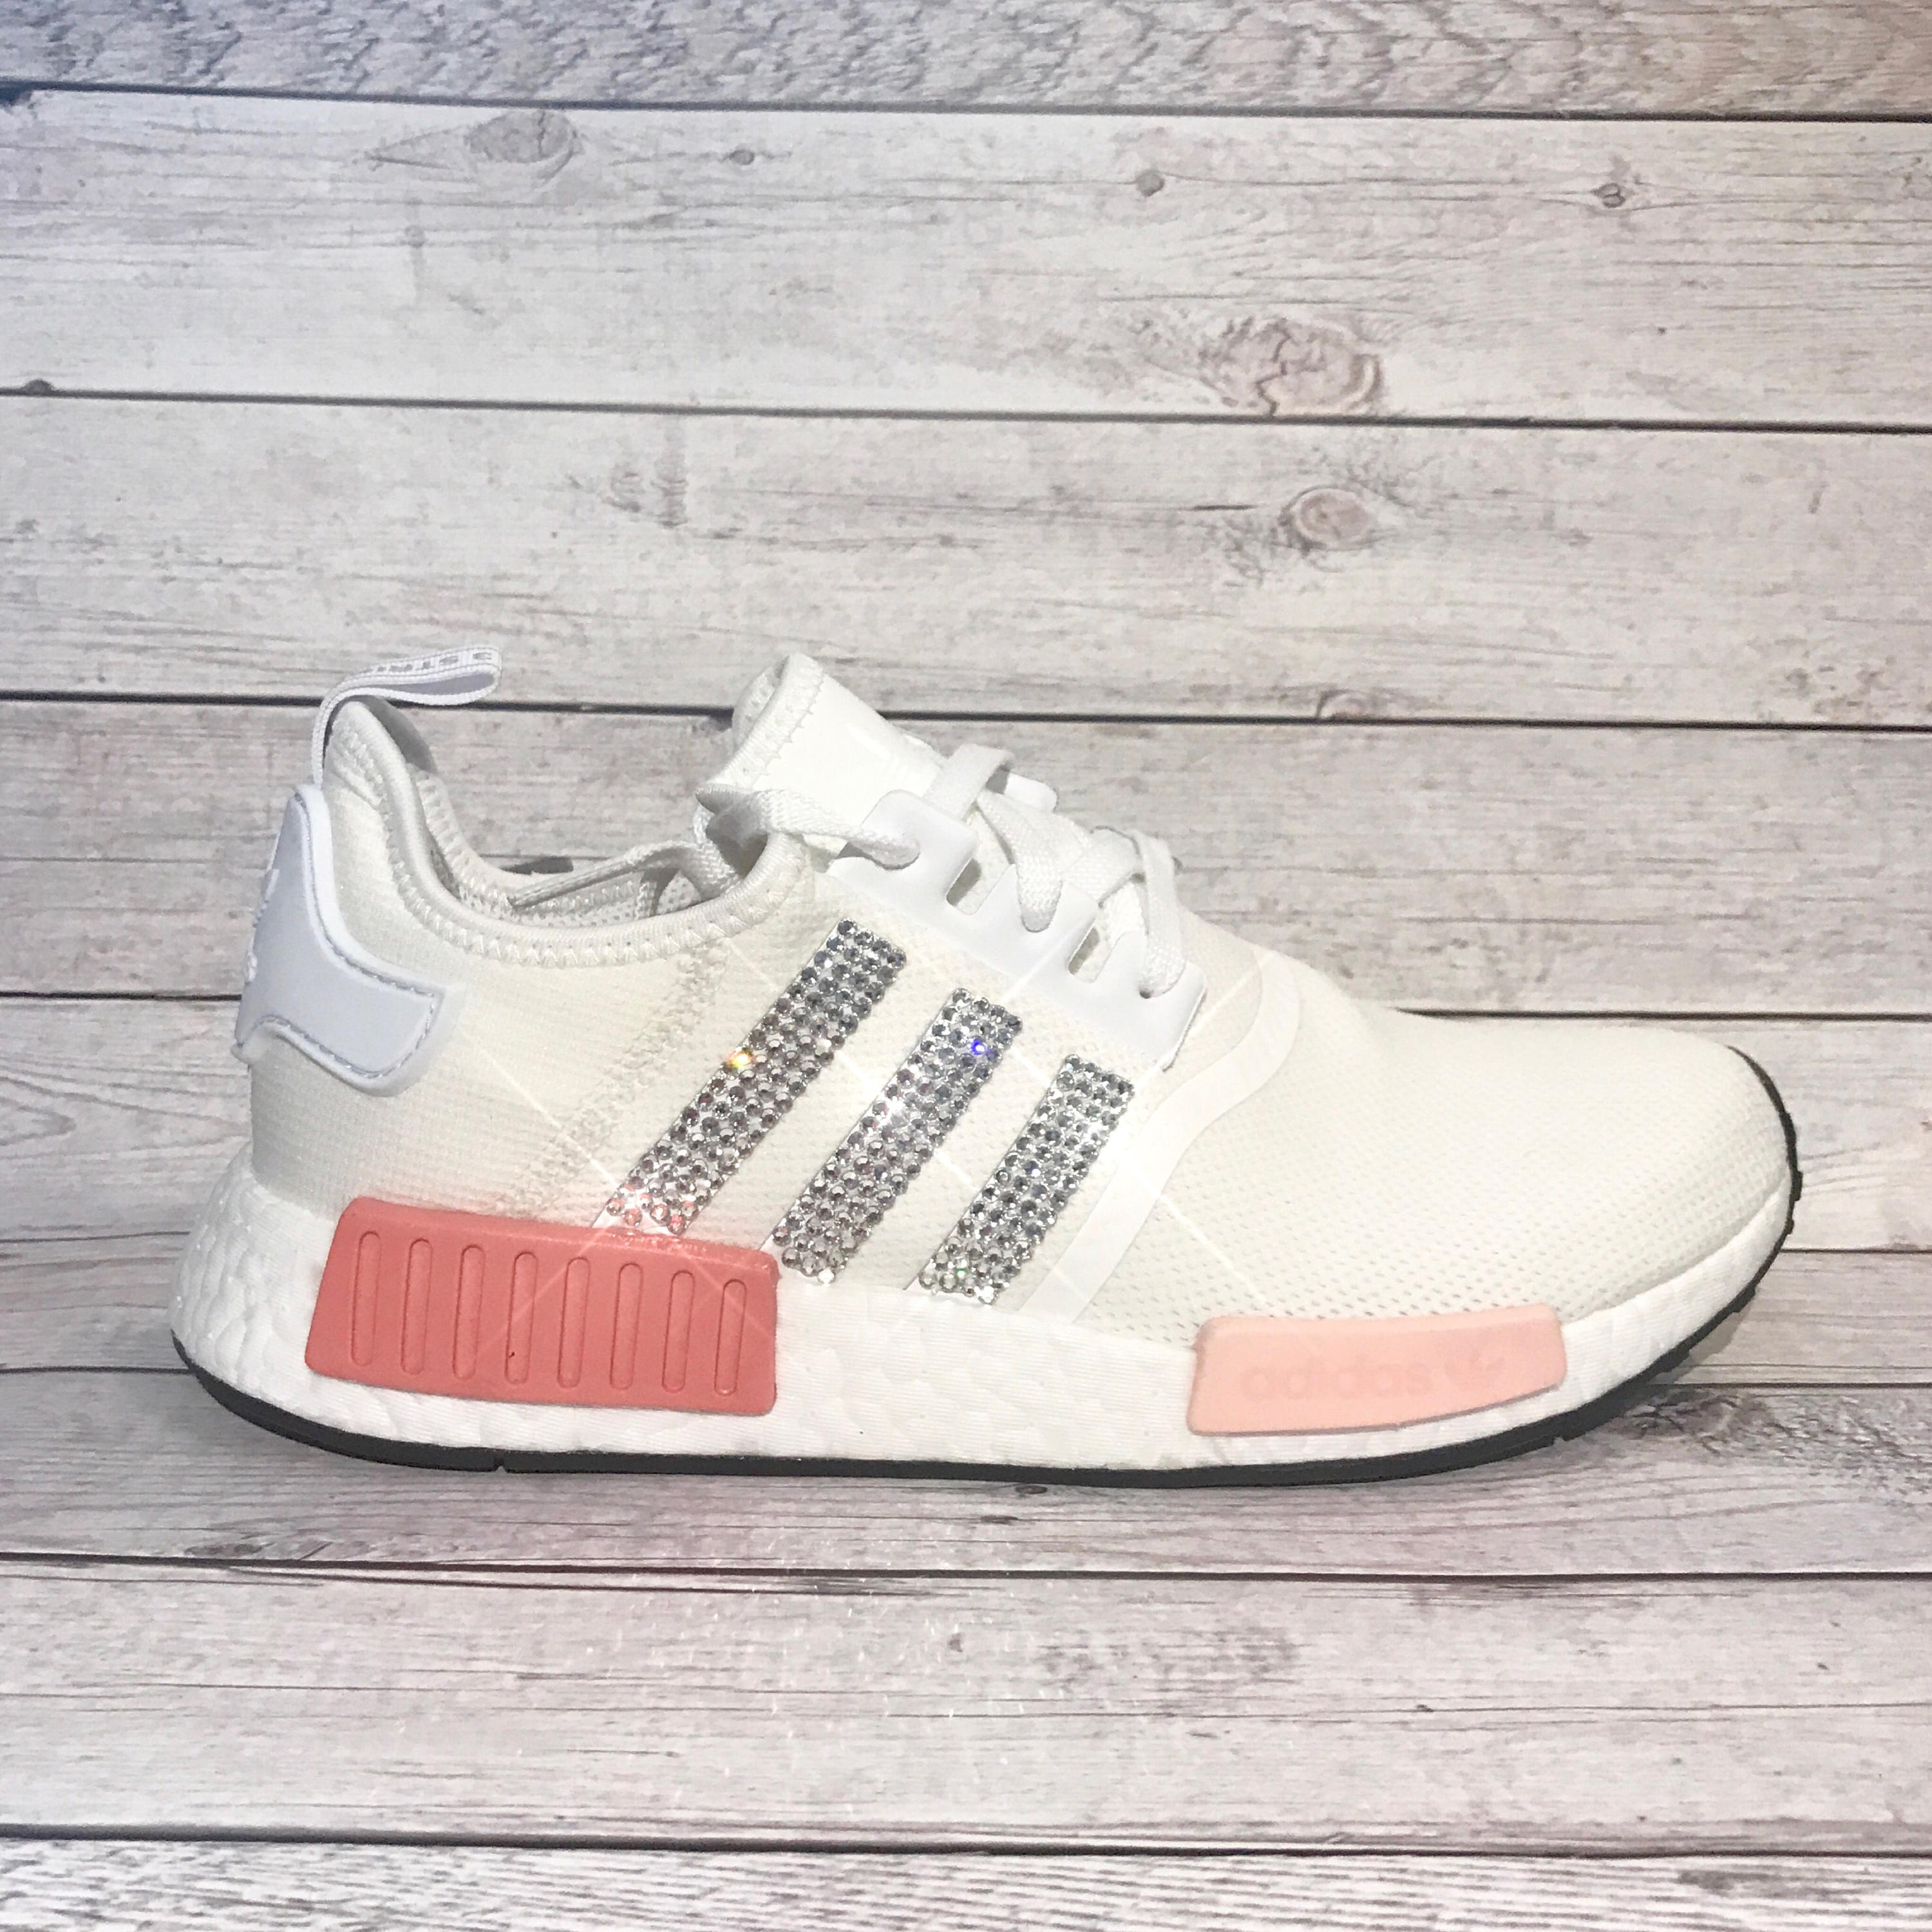 5765f8178 ... new arrivals adidas nmd runner women shoes pink whiteadidas  runnersadidas outlet onlineoutlet details. these adidas